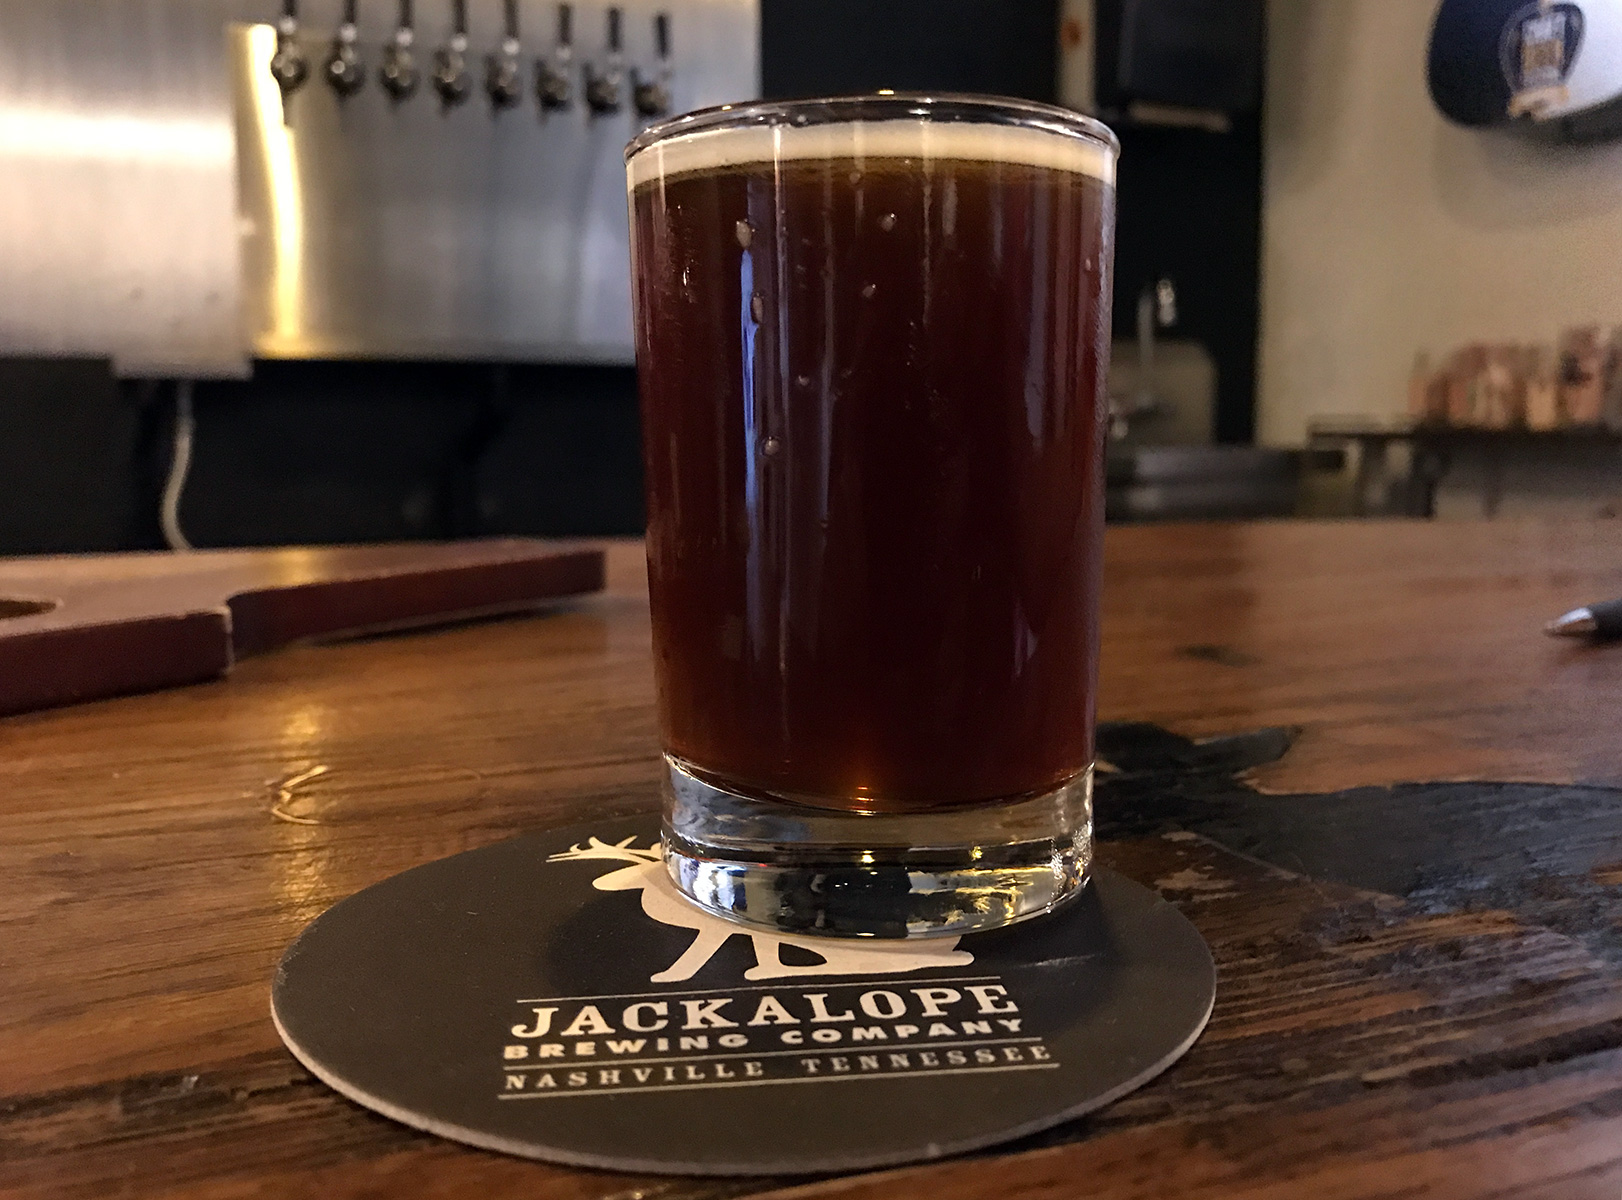 Jackalope Brewing Co. in Nashville, TN by Jets Like Taxis / Hopsmash